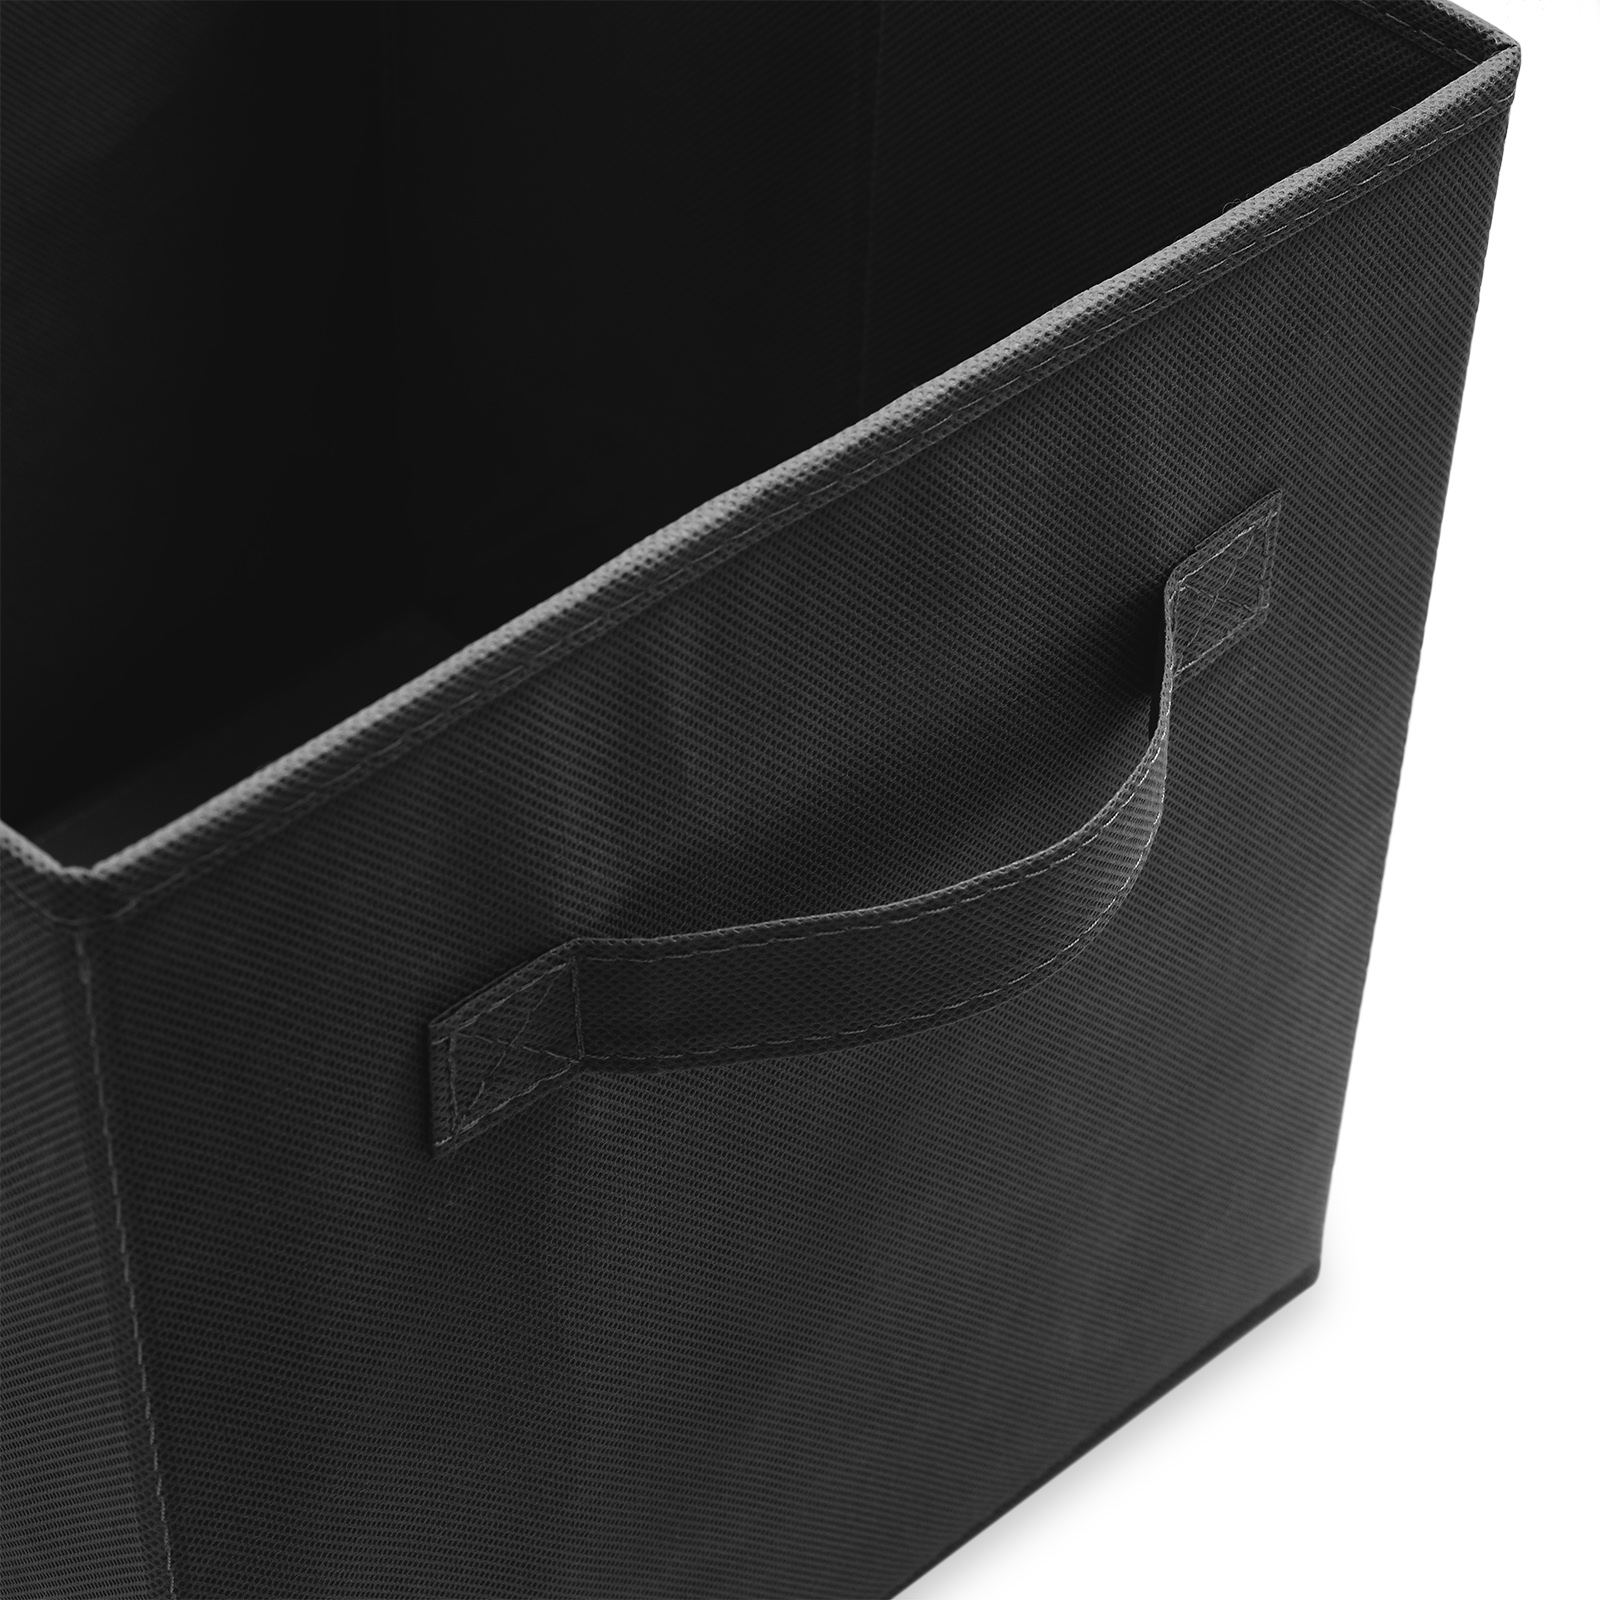 6-Collapsible-Foldable-Cloth-Fabric-Cubby-Cube-Storage-Bins-Baskets-for-Shelves thumbnail 11